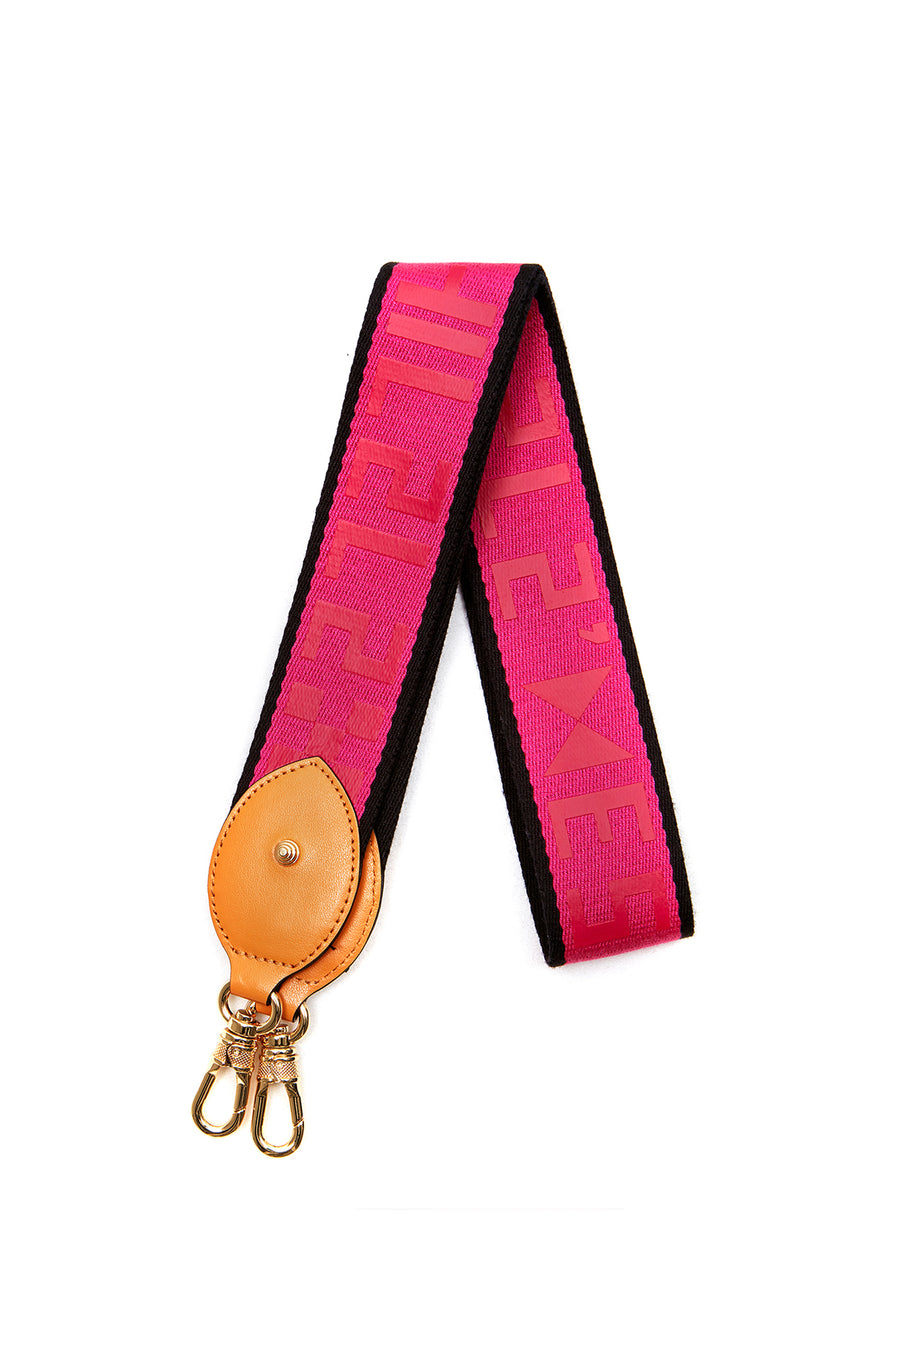 WEBBING SHOULDER STRAP _ Pink-Black - LOGO